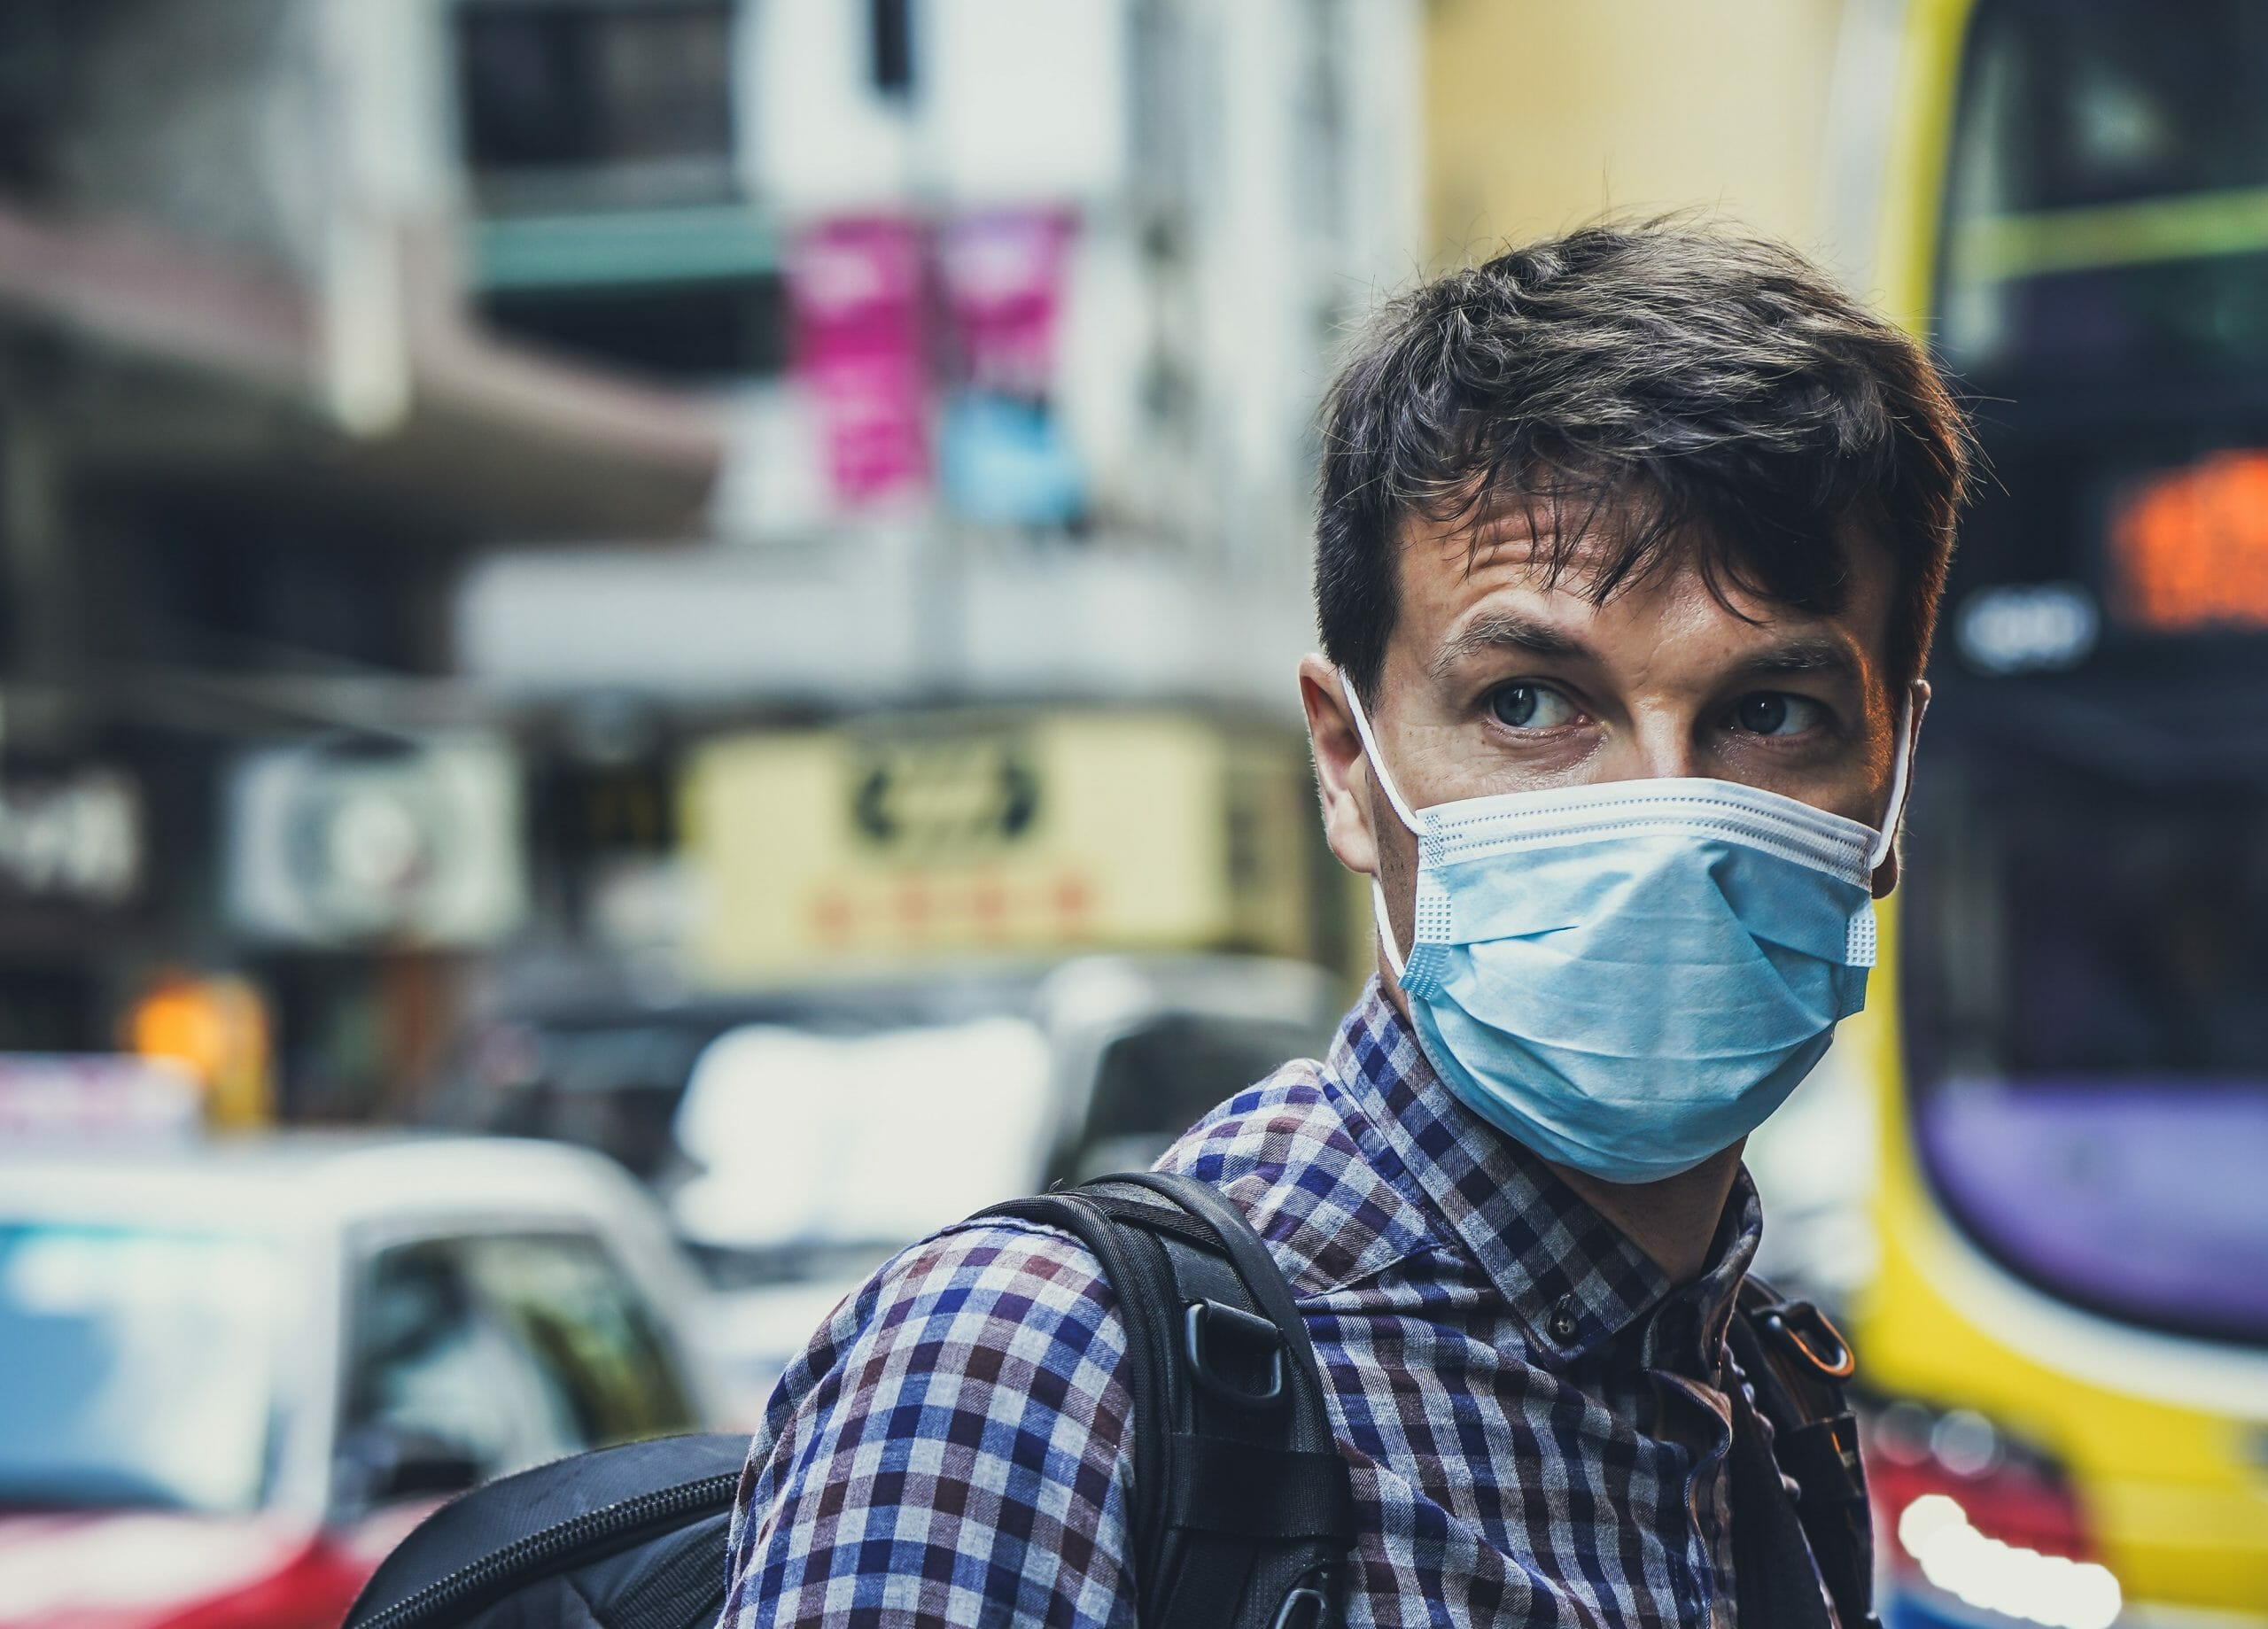 Innovation in the time of pandemic